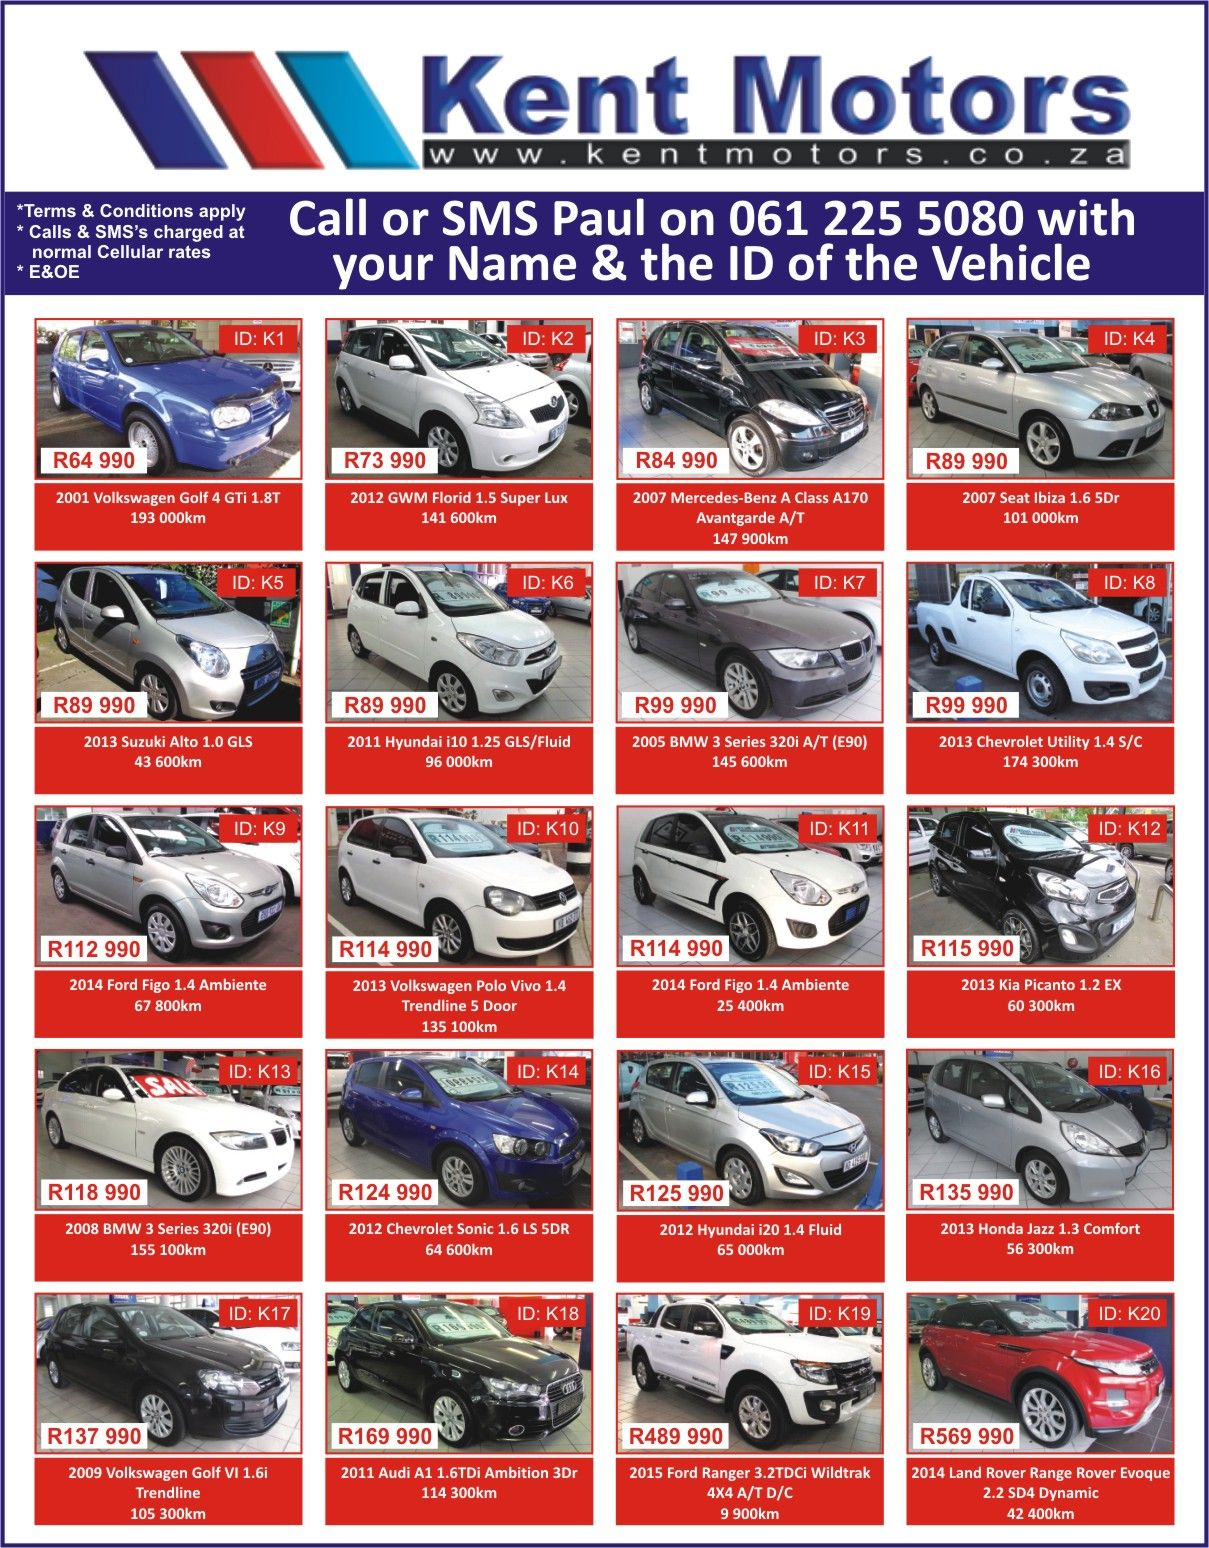 Kent Motors Call Or Sms Paul On 061 225 5080 With Your Name Id